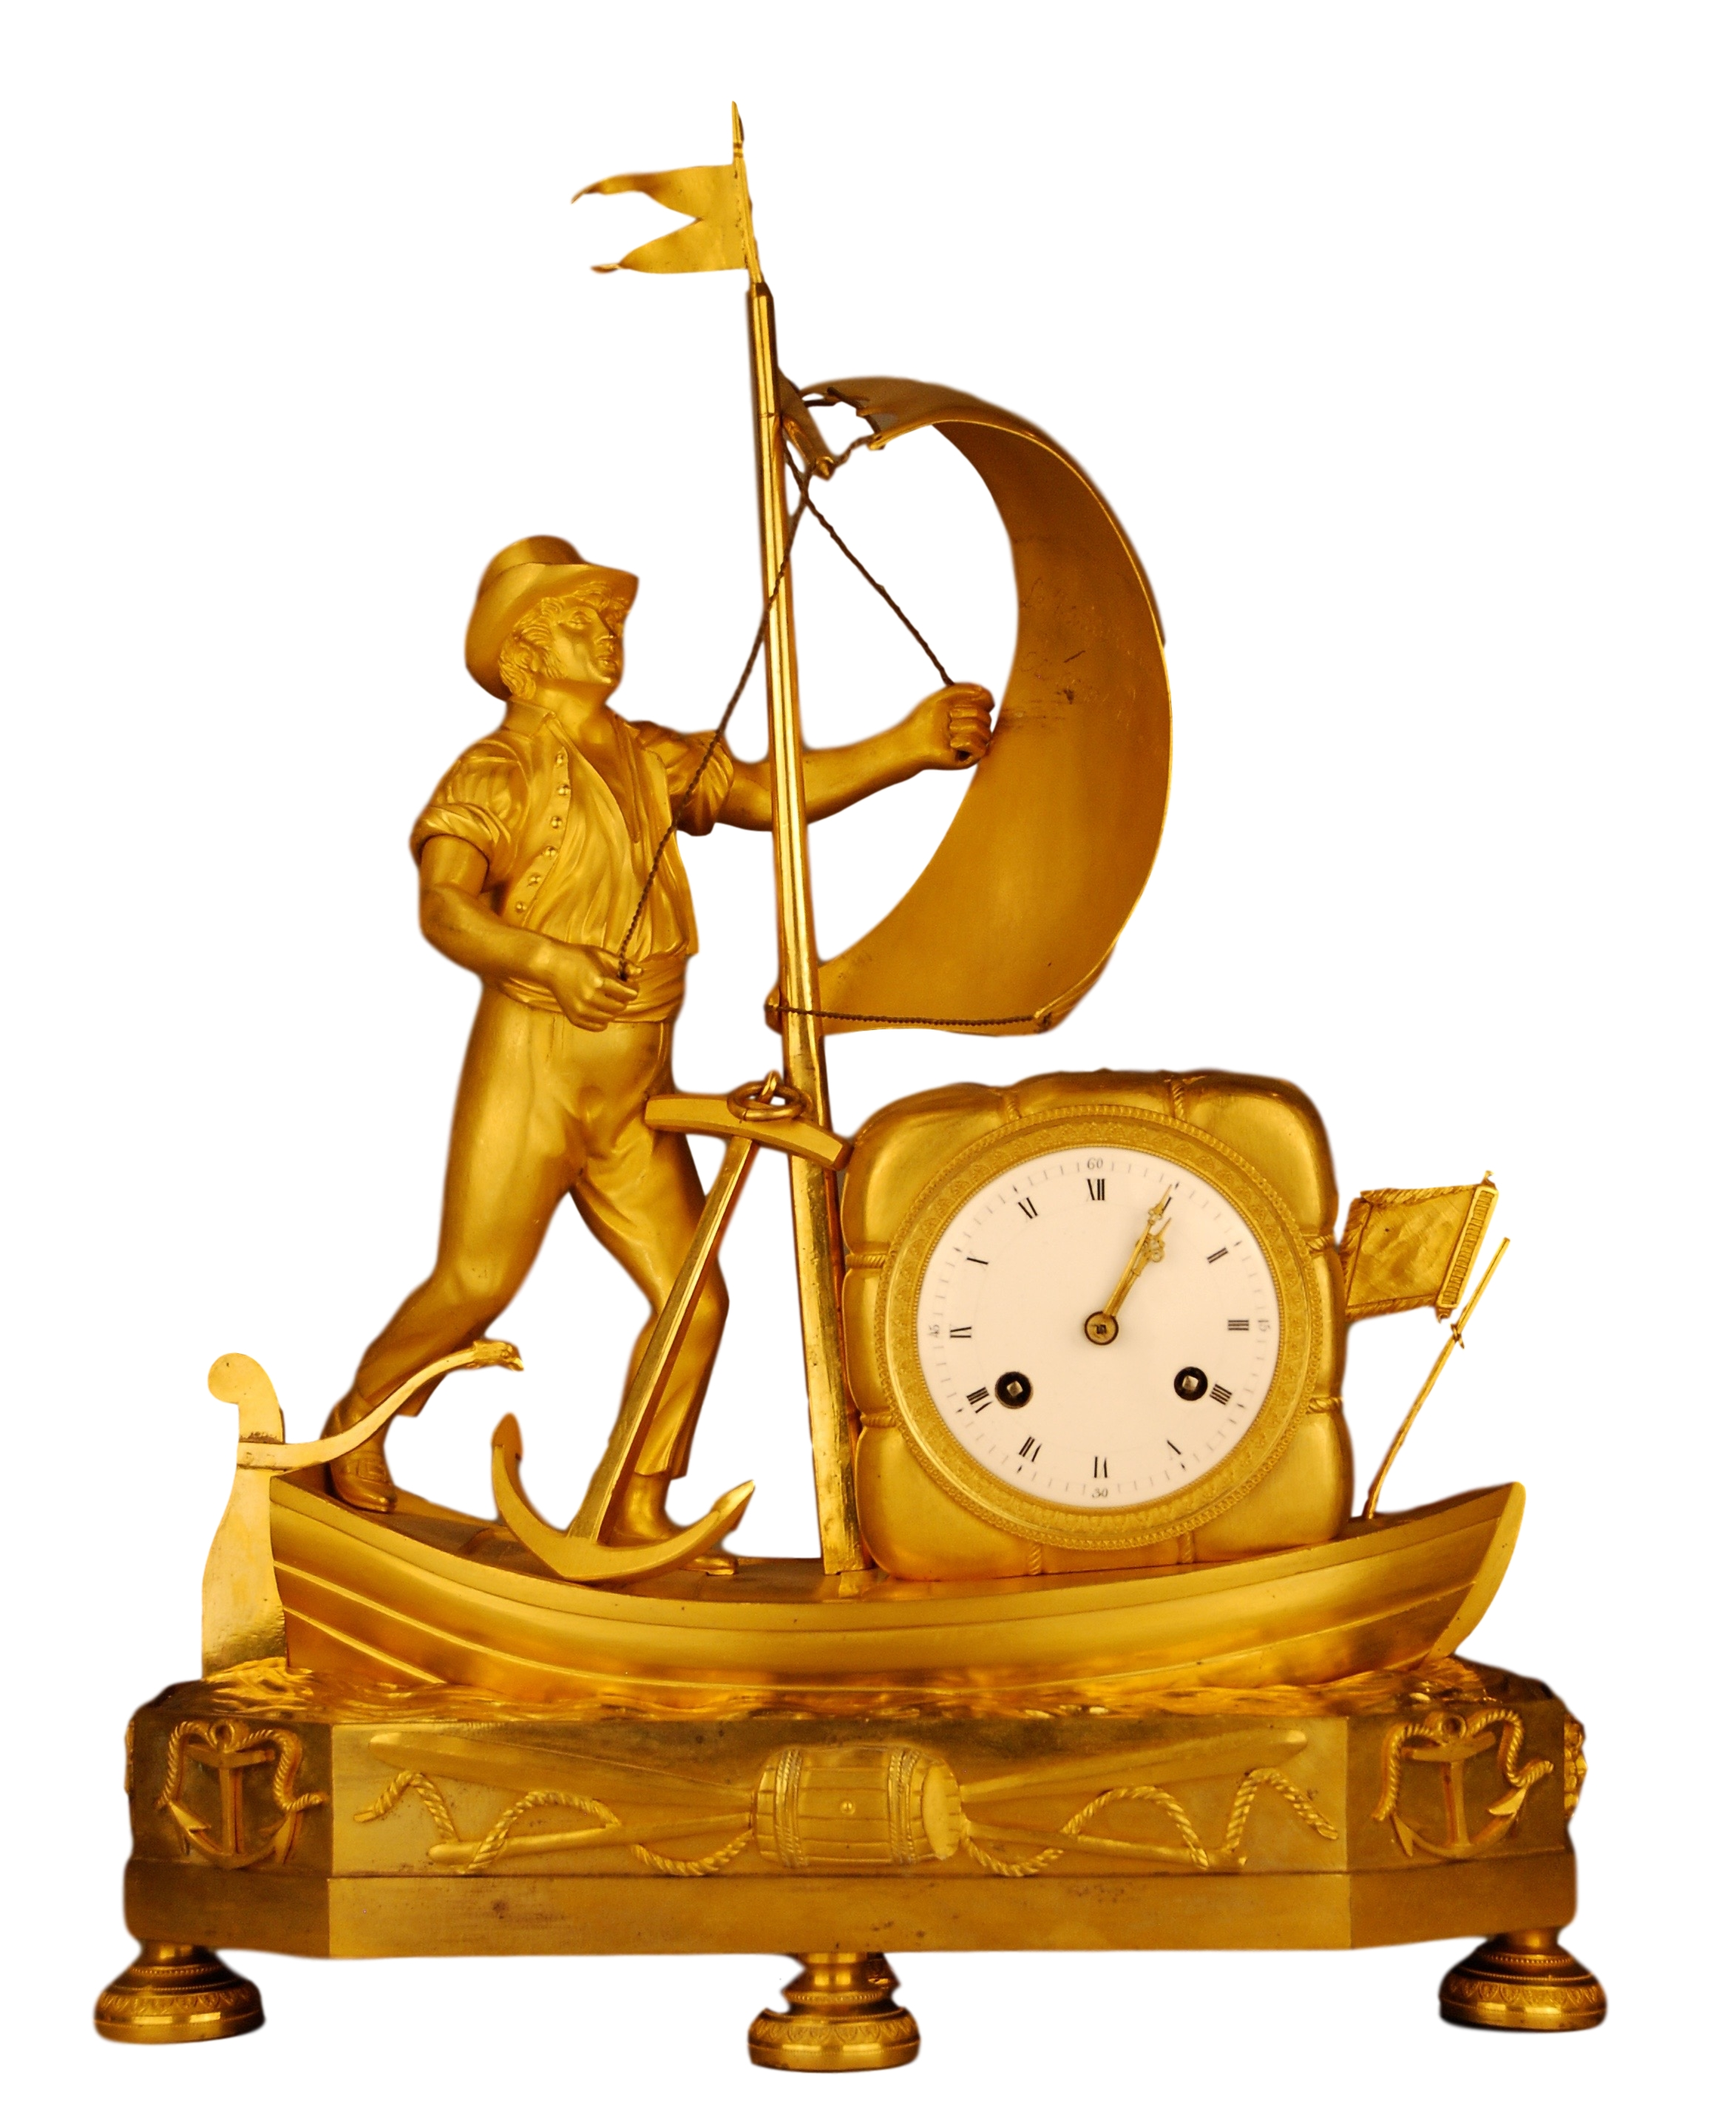 This antique gilt French Empire clock is from the rare group of clocks known as 'genre clocks' that often depicted everyday and amusing scenes from life and folklore.